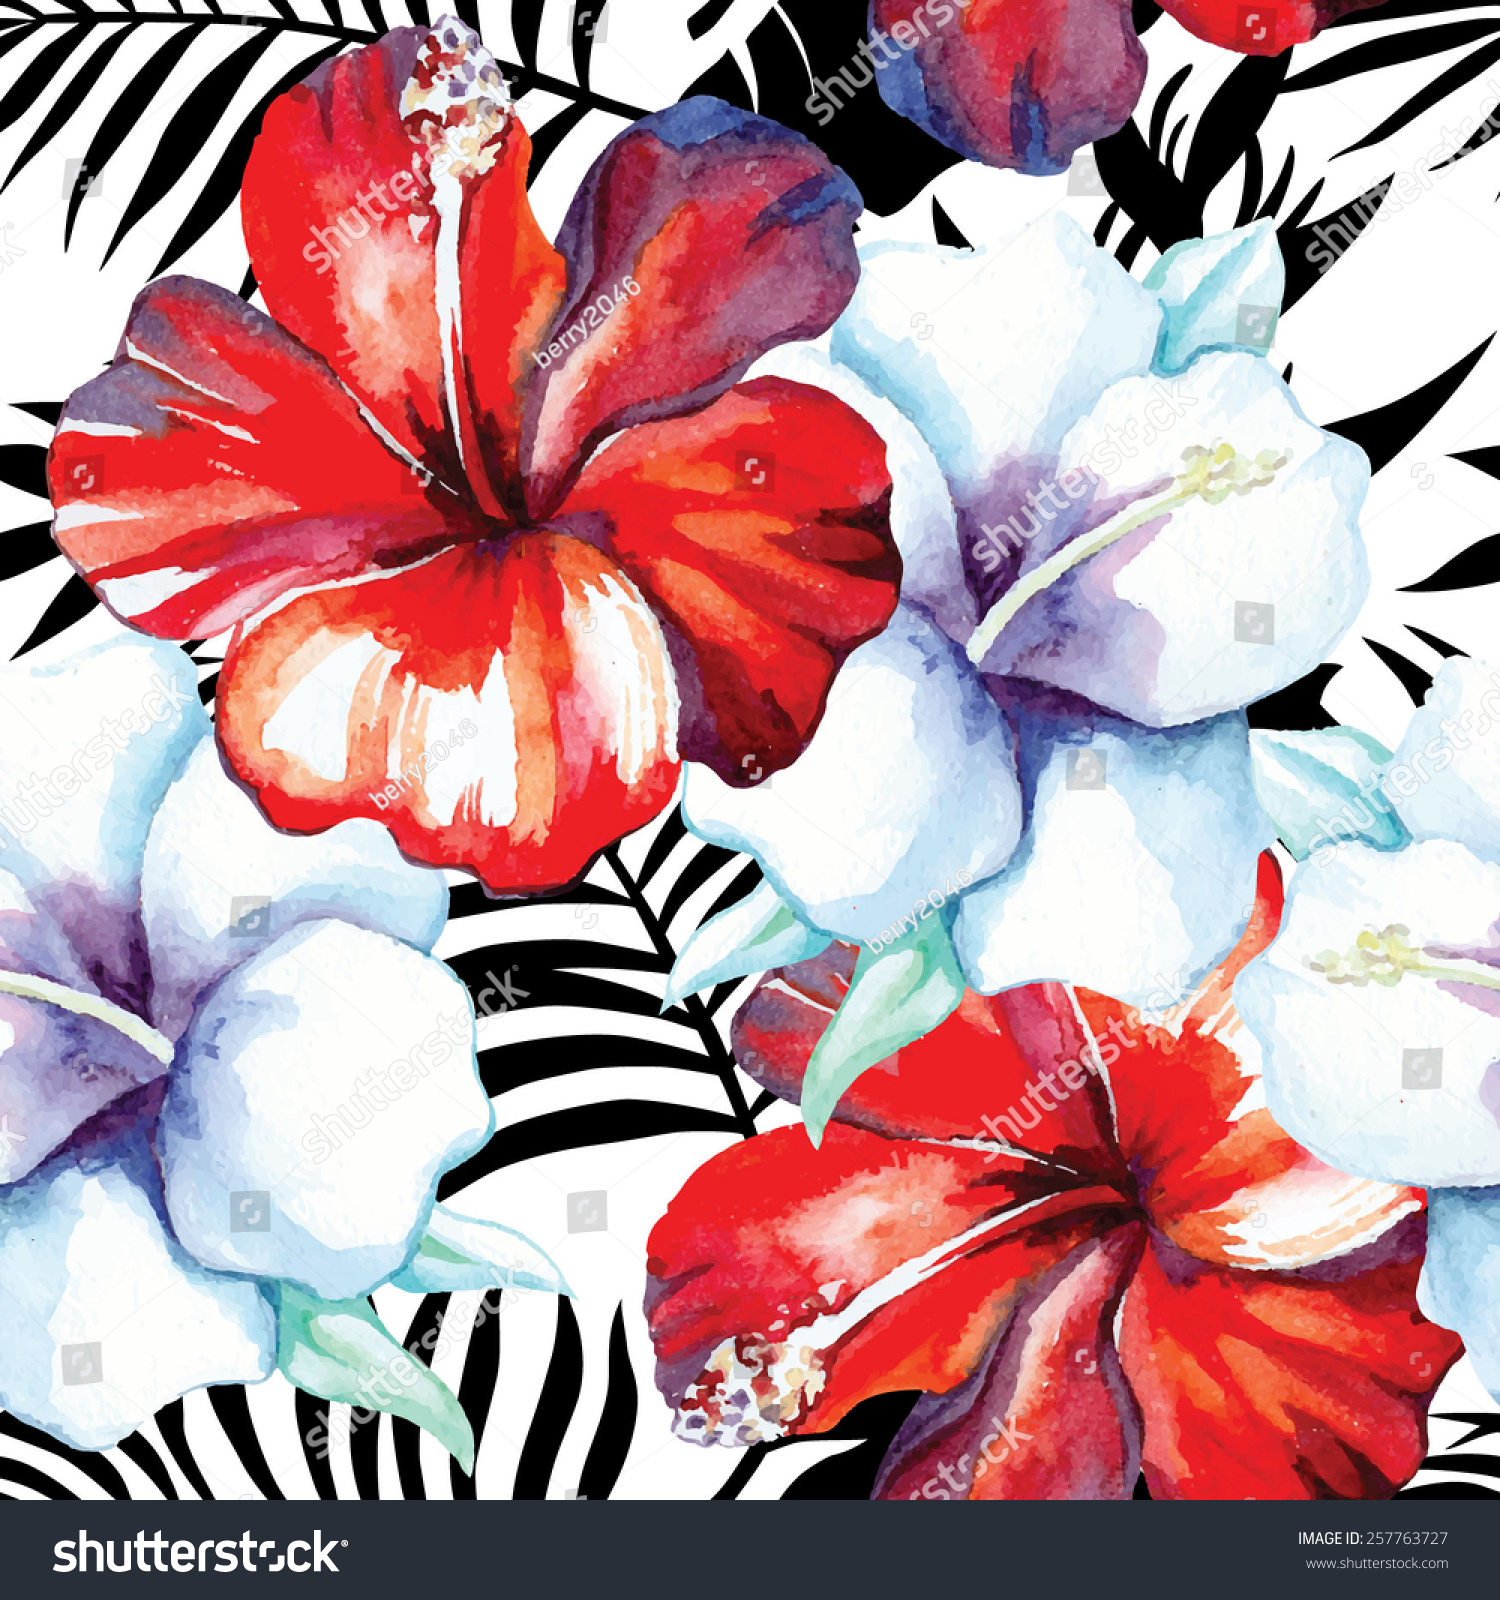 Tropic Flowers Red And White Hibiscus Painting Hand Drawn Watercolor Exotic Floral Hawaiian Seamless Vector